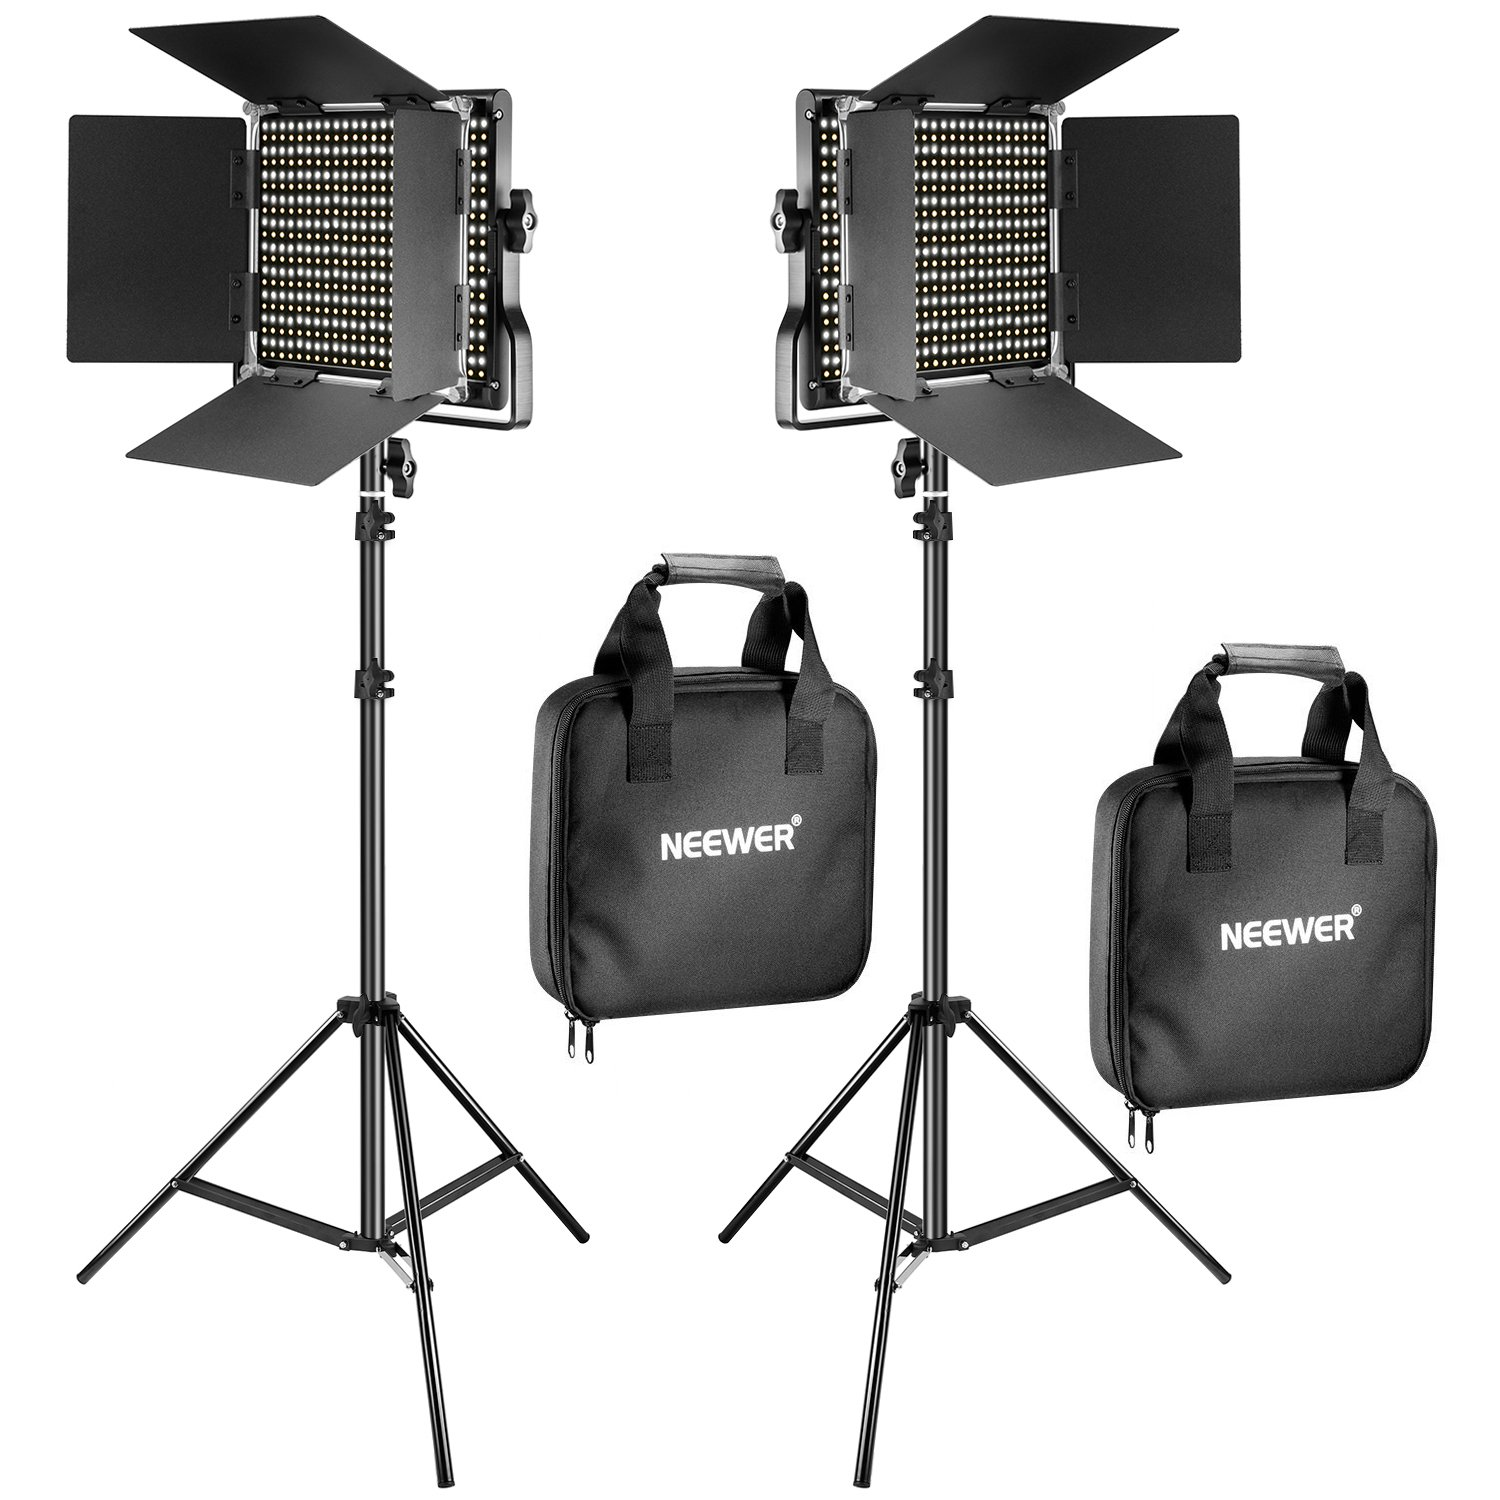 lighting exposure focal used pin bias iso camera strobe length lights